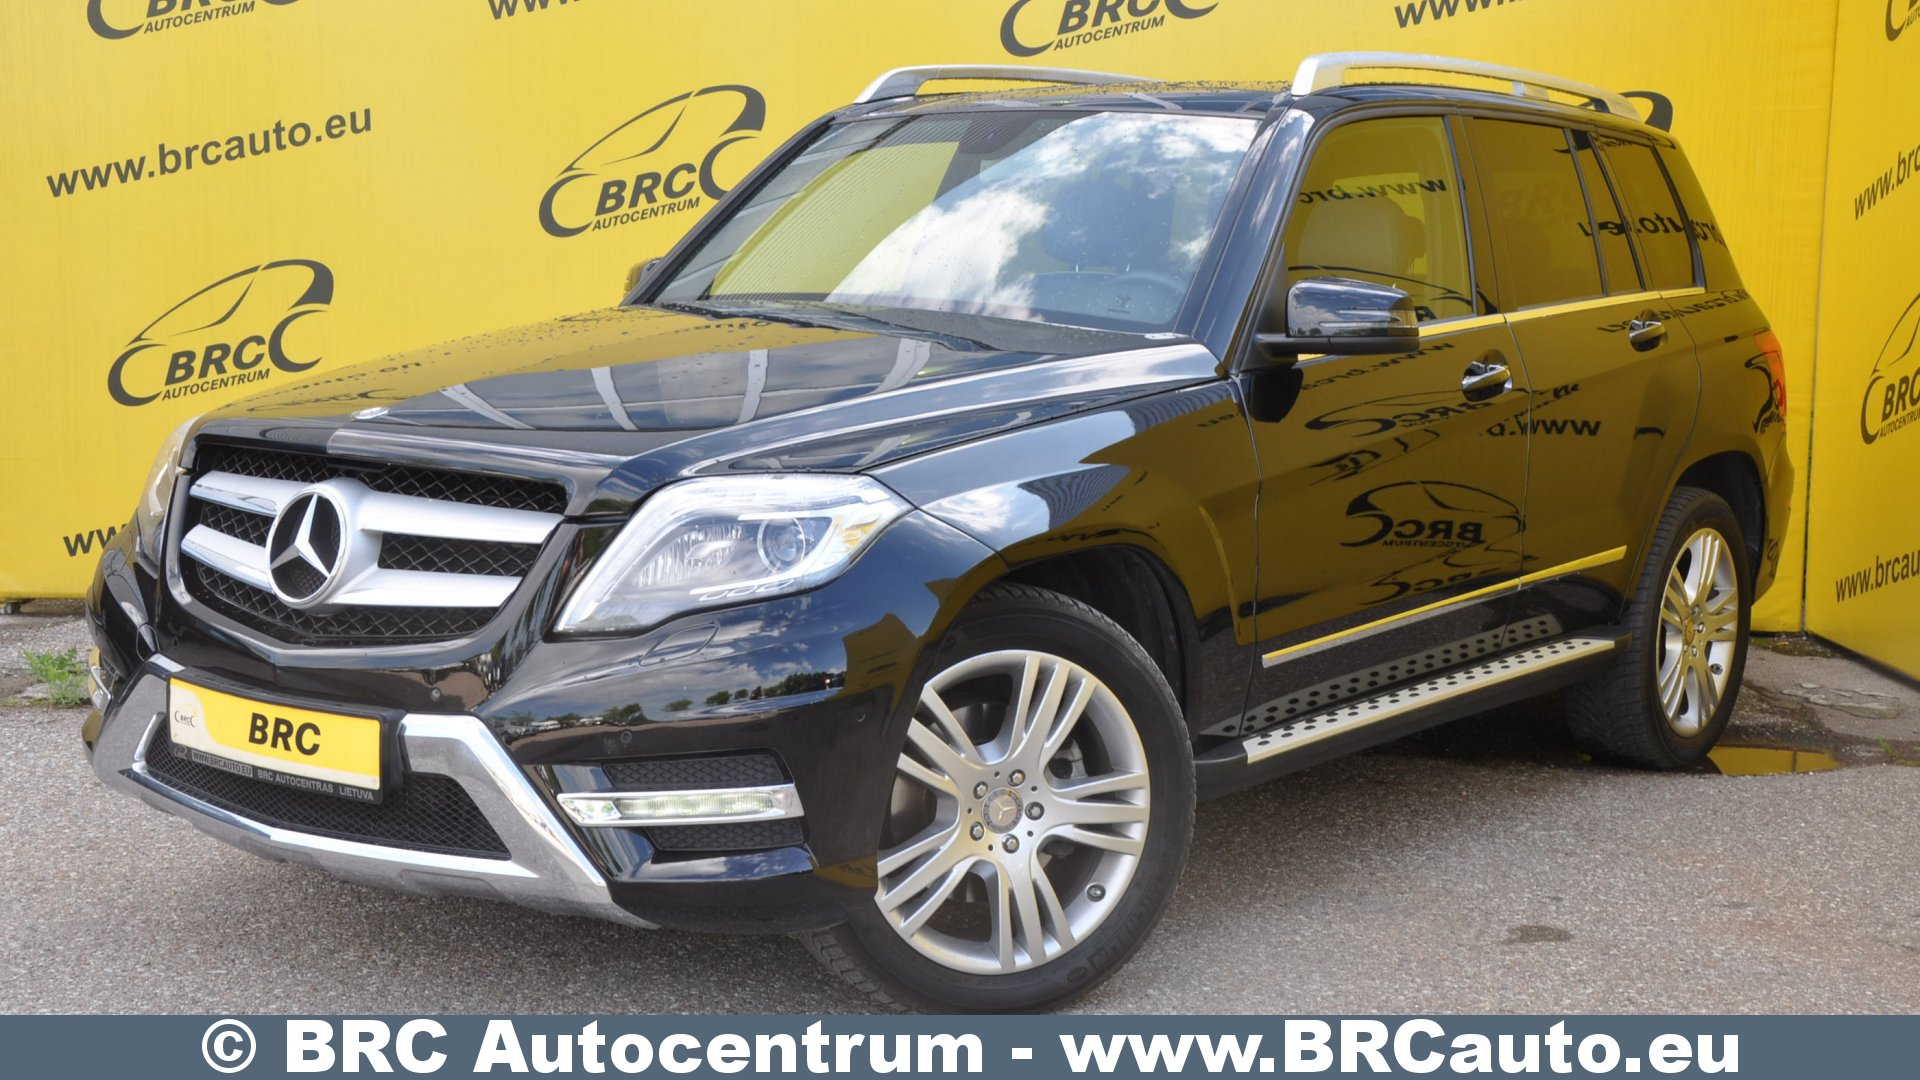 Mercedes benz glk 250 amg automatas id 778803 brc for Mercedes benz glk350 amg